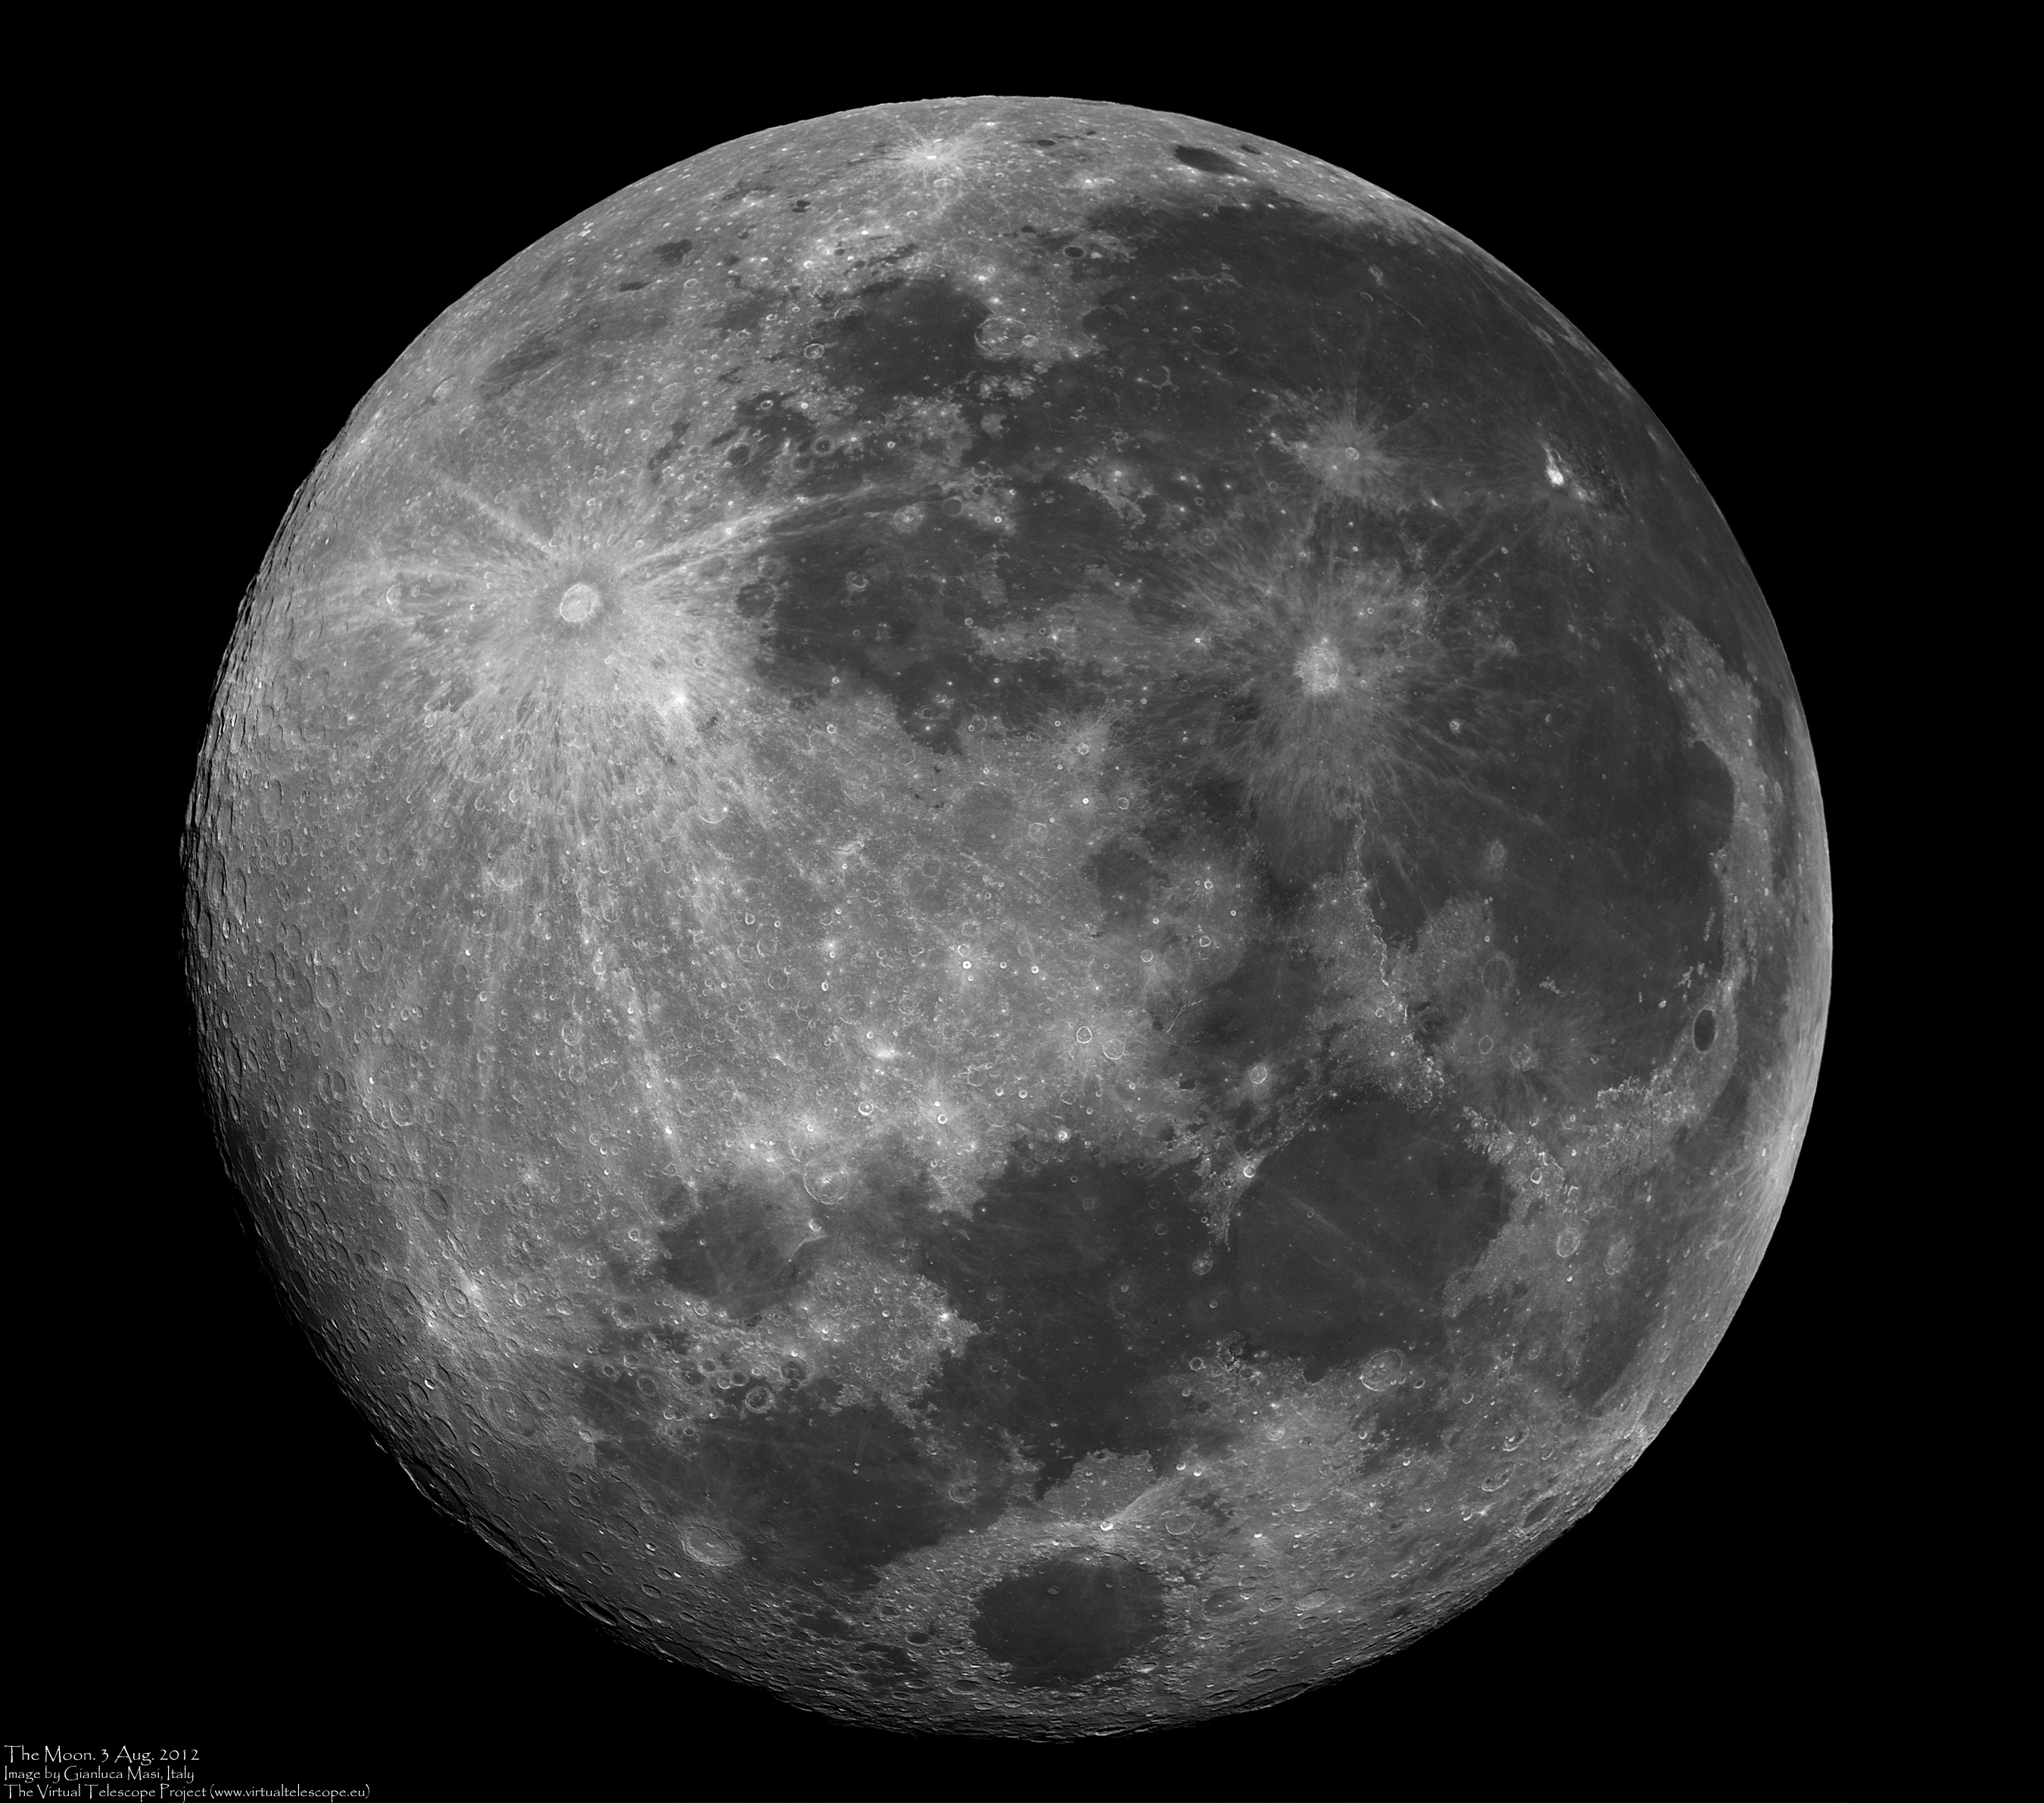 The Full Moon - The Virtual Telescope Project 2.0